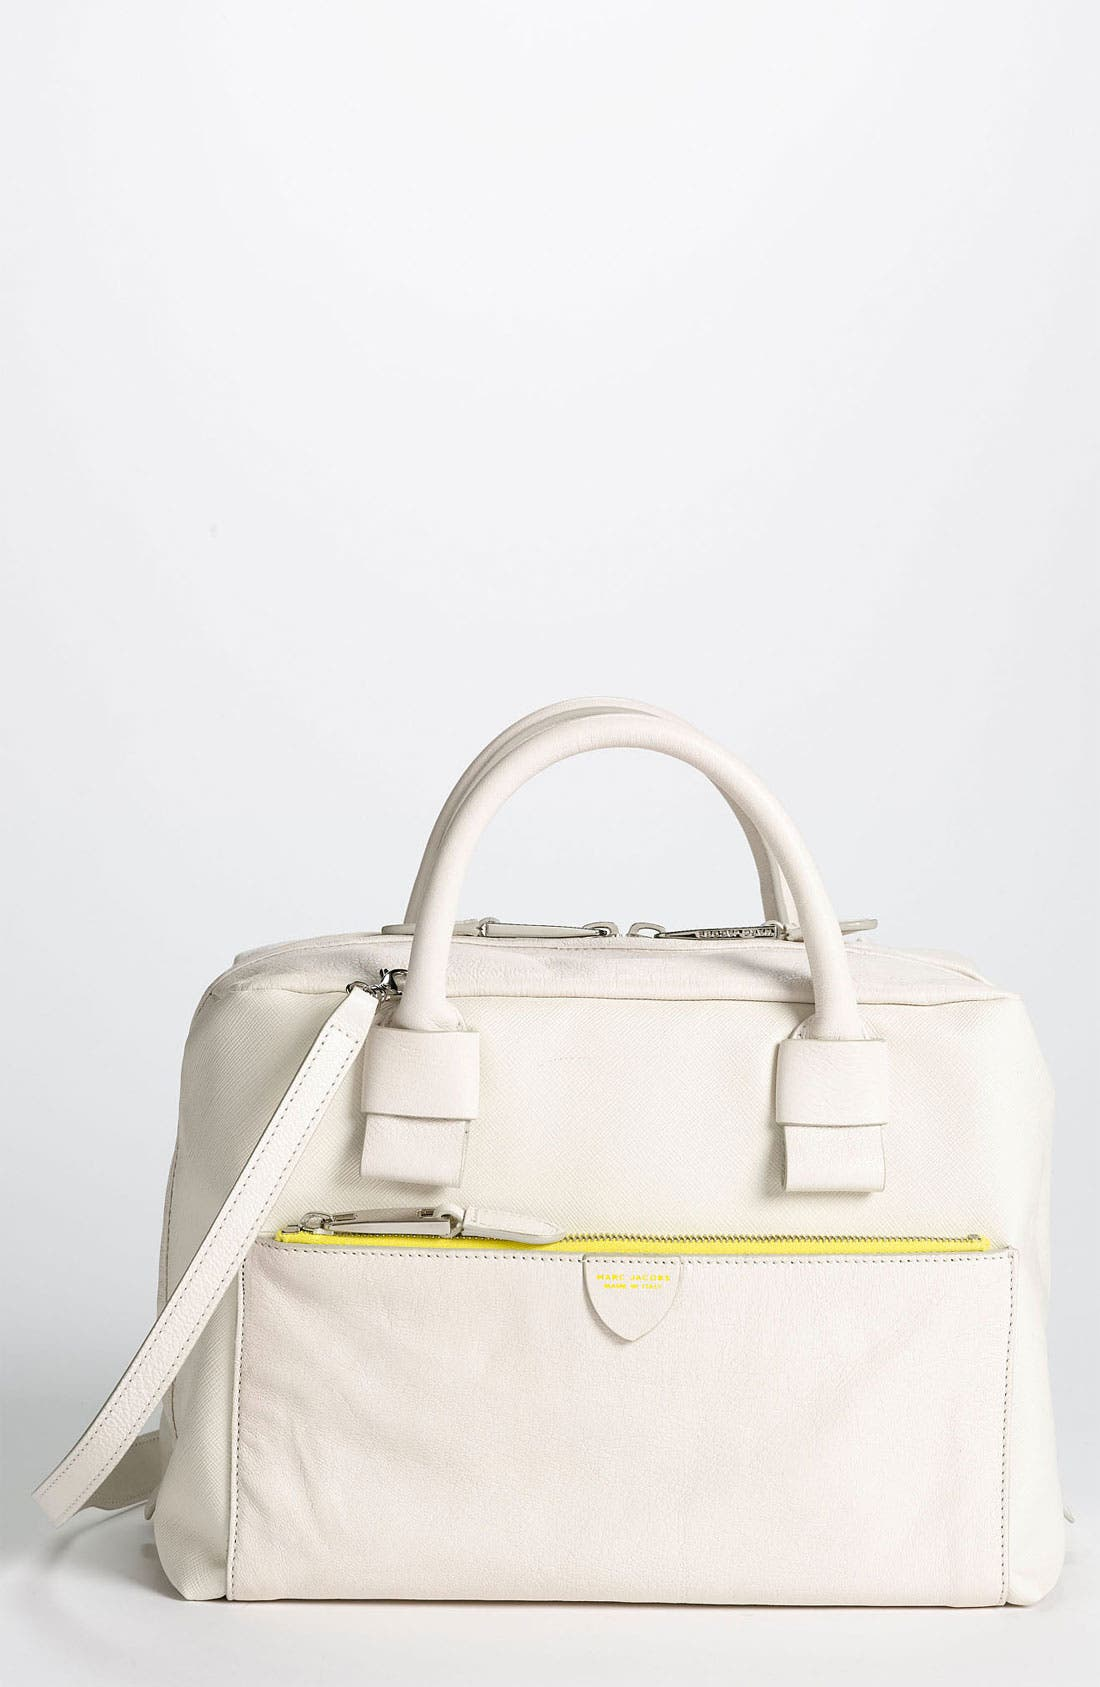 Main Image - MARC JACOBS 'Small Antonia' Leather Satchel